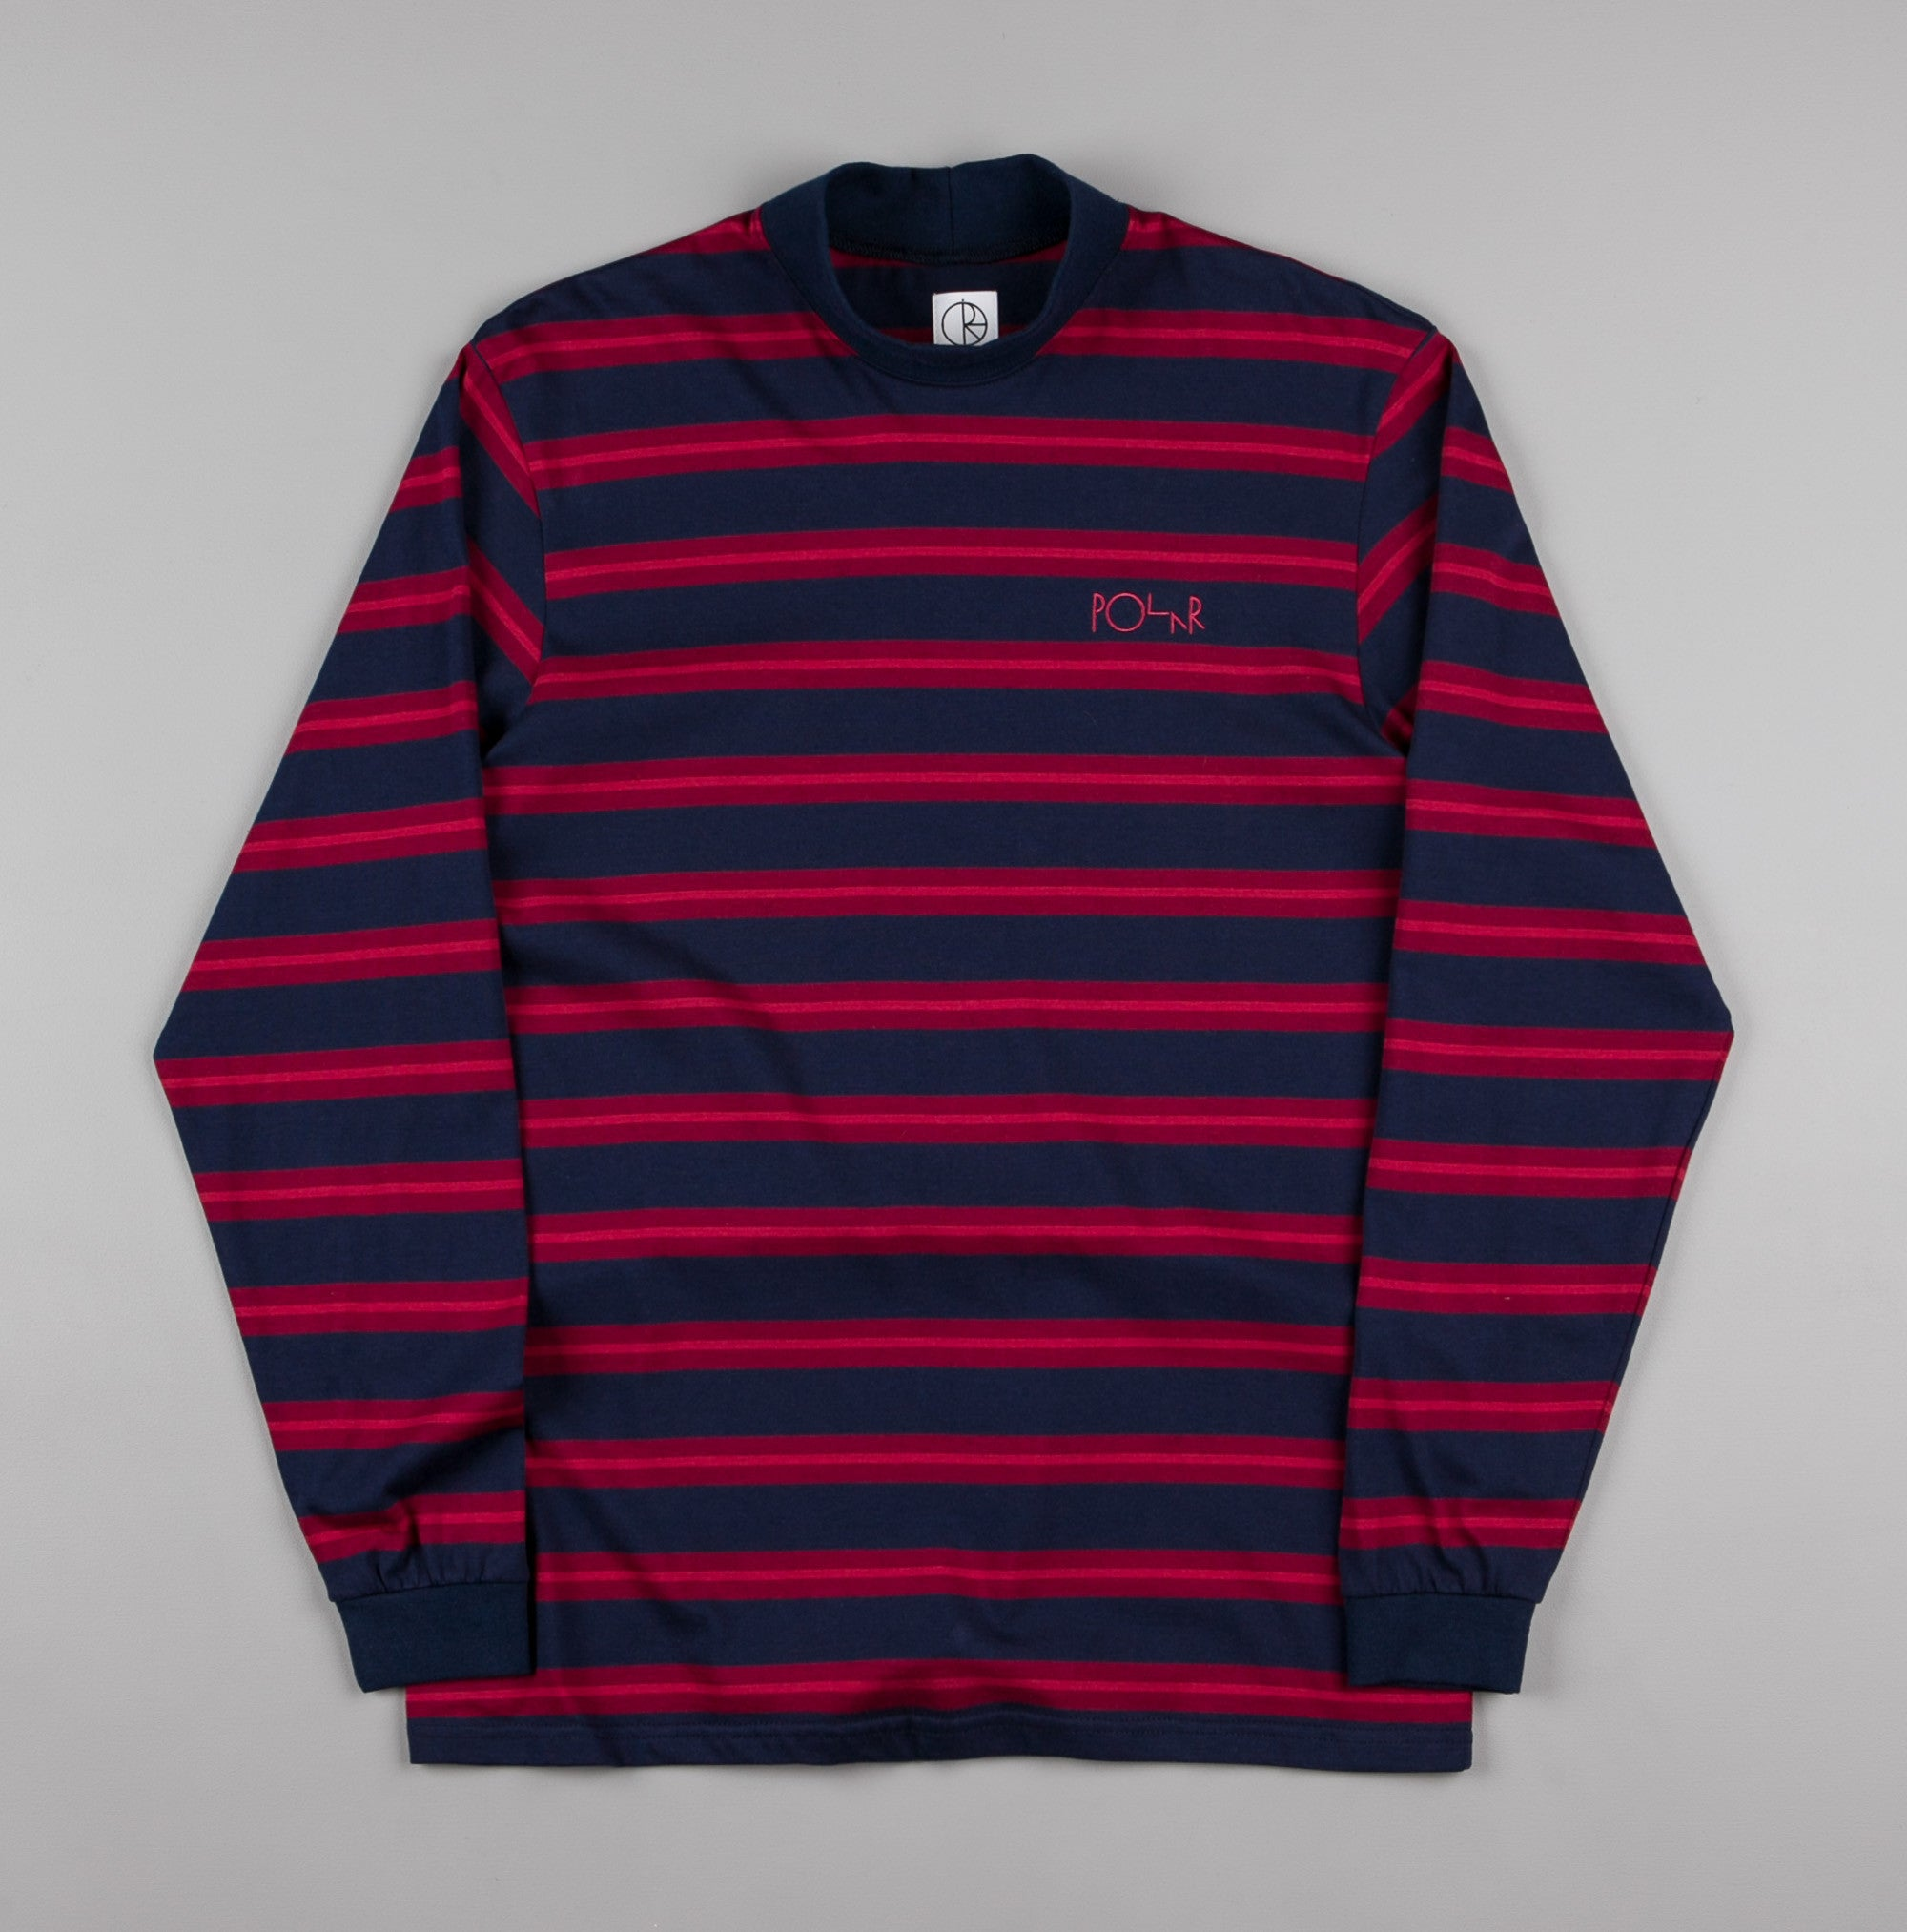 Polar Brady Mock Neck Shirt - Navy / Burgundy / Light Red